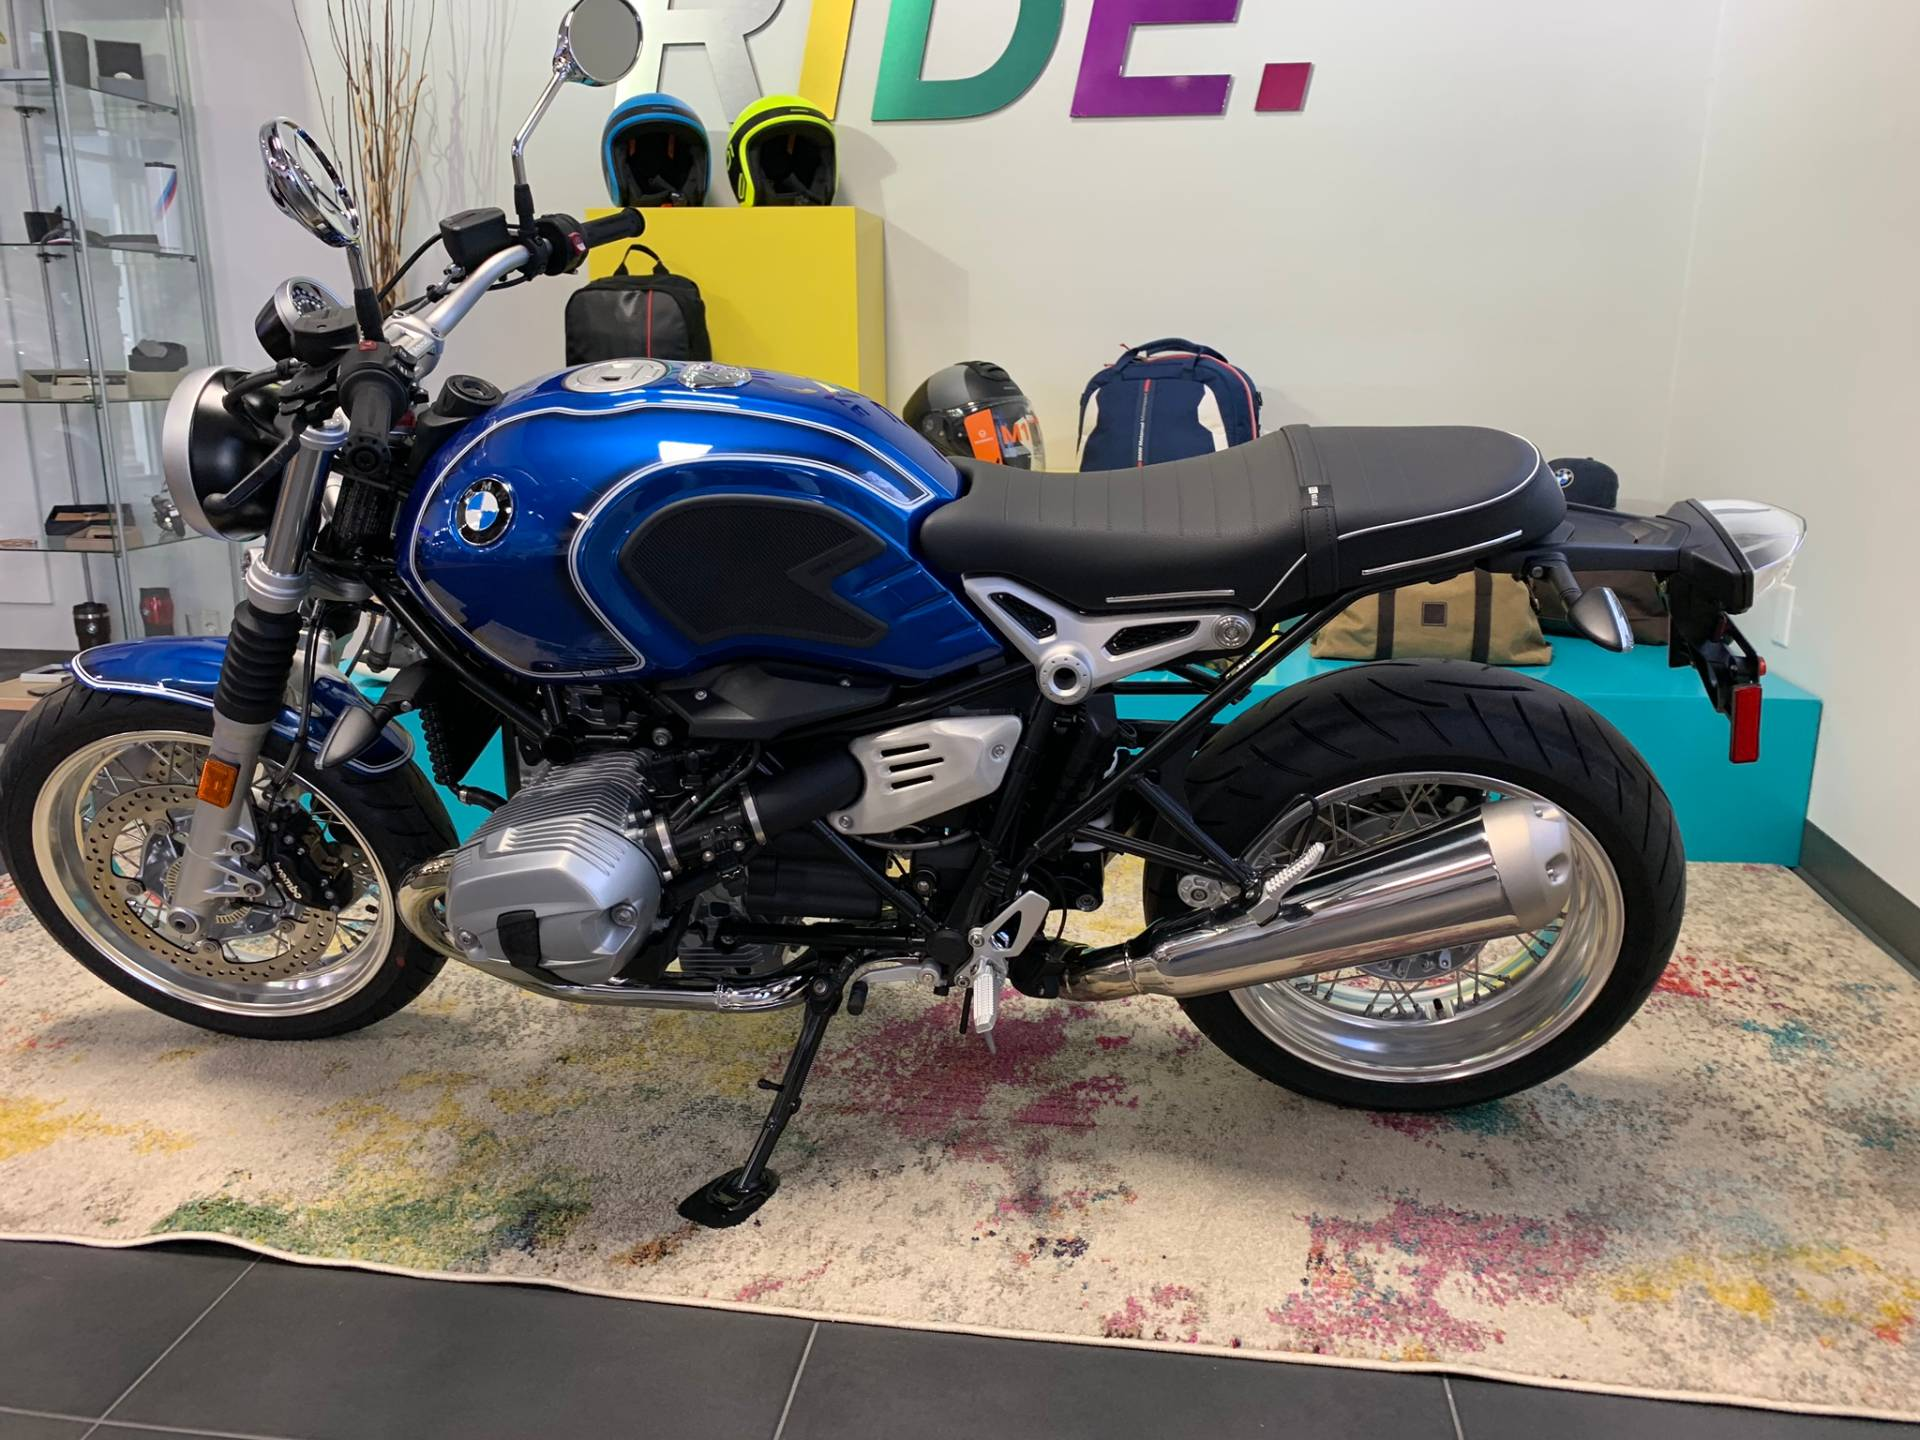 New 2020 2019 BMW R NineT for sale, BMW for sale, BMW Motorcycle Café Racer, new BMW Caffe, Cafe Racer, BMW. BMW Motorcycles of Miami, Motorcycles of Miami, Motorcycles Miami, New Motorcycles, Used Motorcycles, pre-owned. #BMWMotorcyclesOfMiami #MotorcyclesOfMiami. - Photo 31